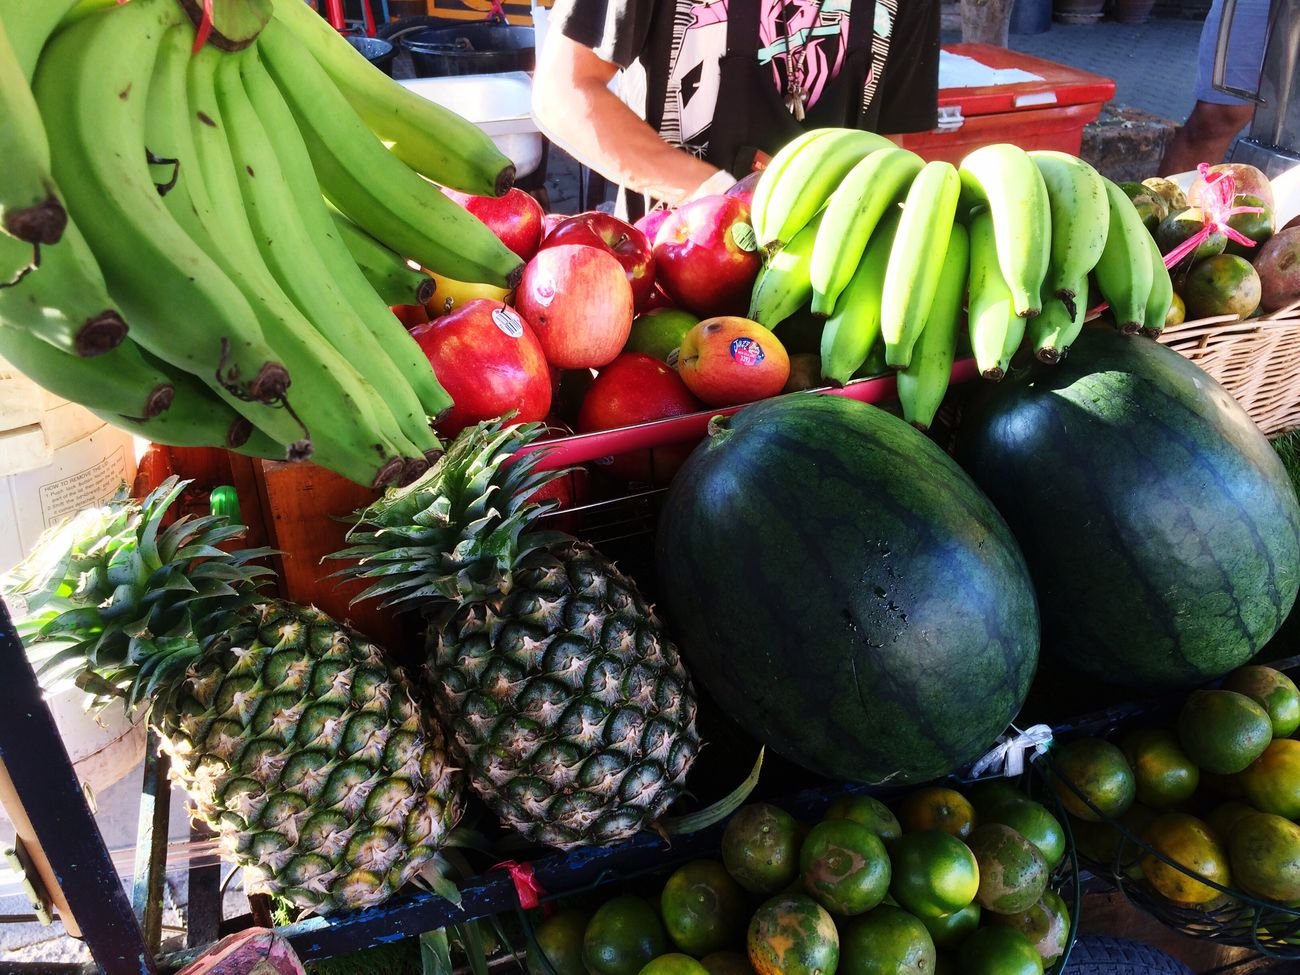 Food Food And Drink Freshness Healthy Eating Fruit Banana Vegetable Market Day Outdoors No People Water Melon Orange Green Close-up Thailand